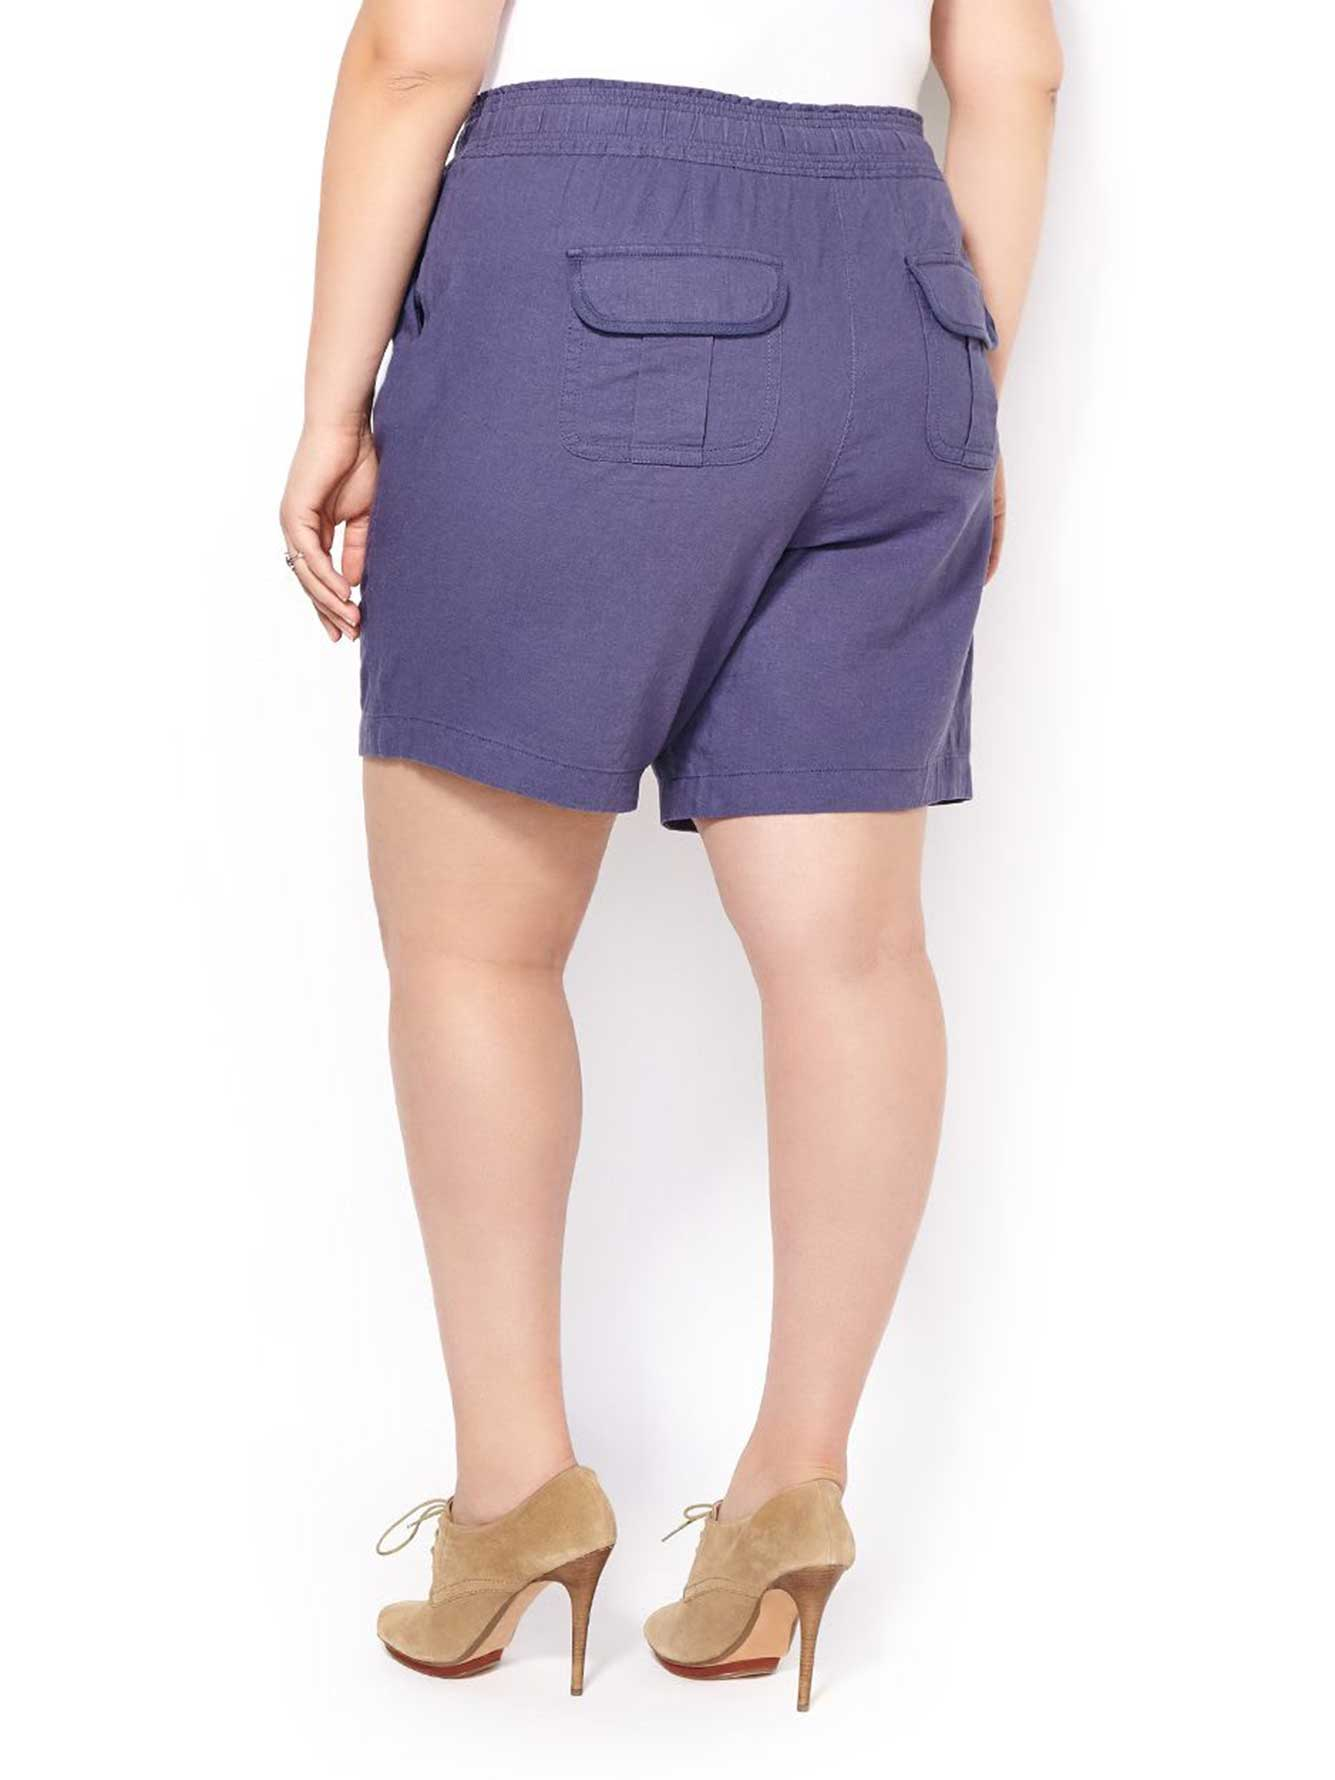 Find great deals on eBay for bermuda shorts. Shop with confidence.